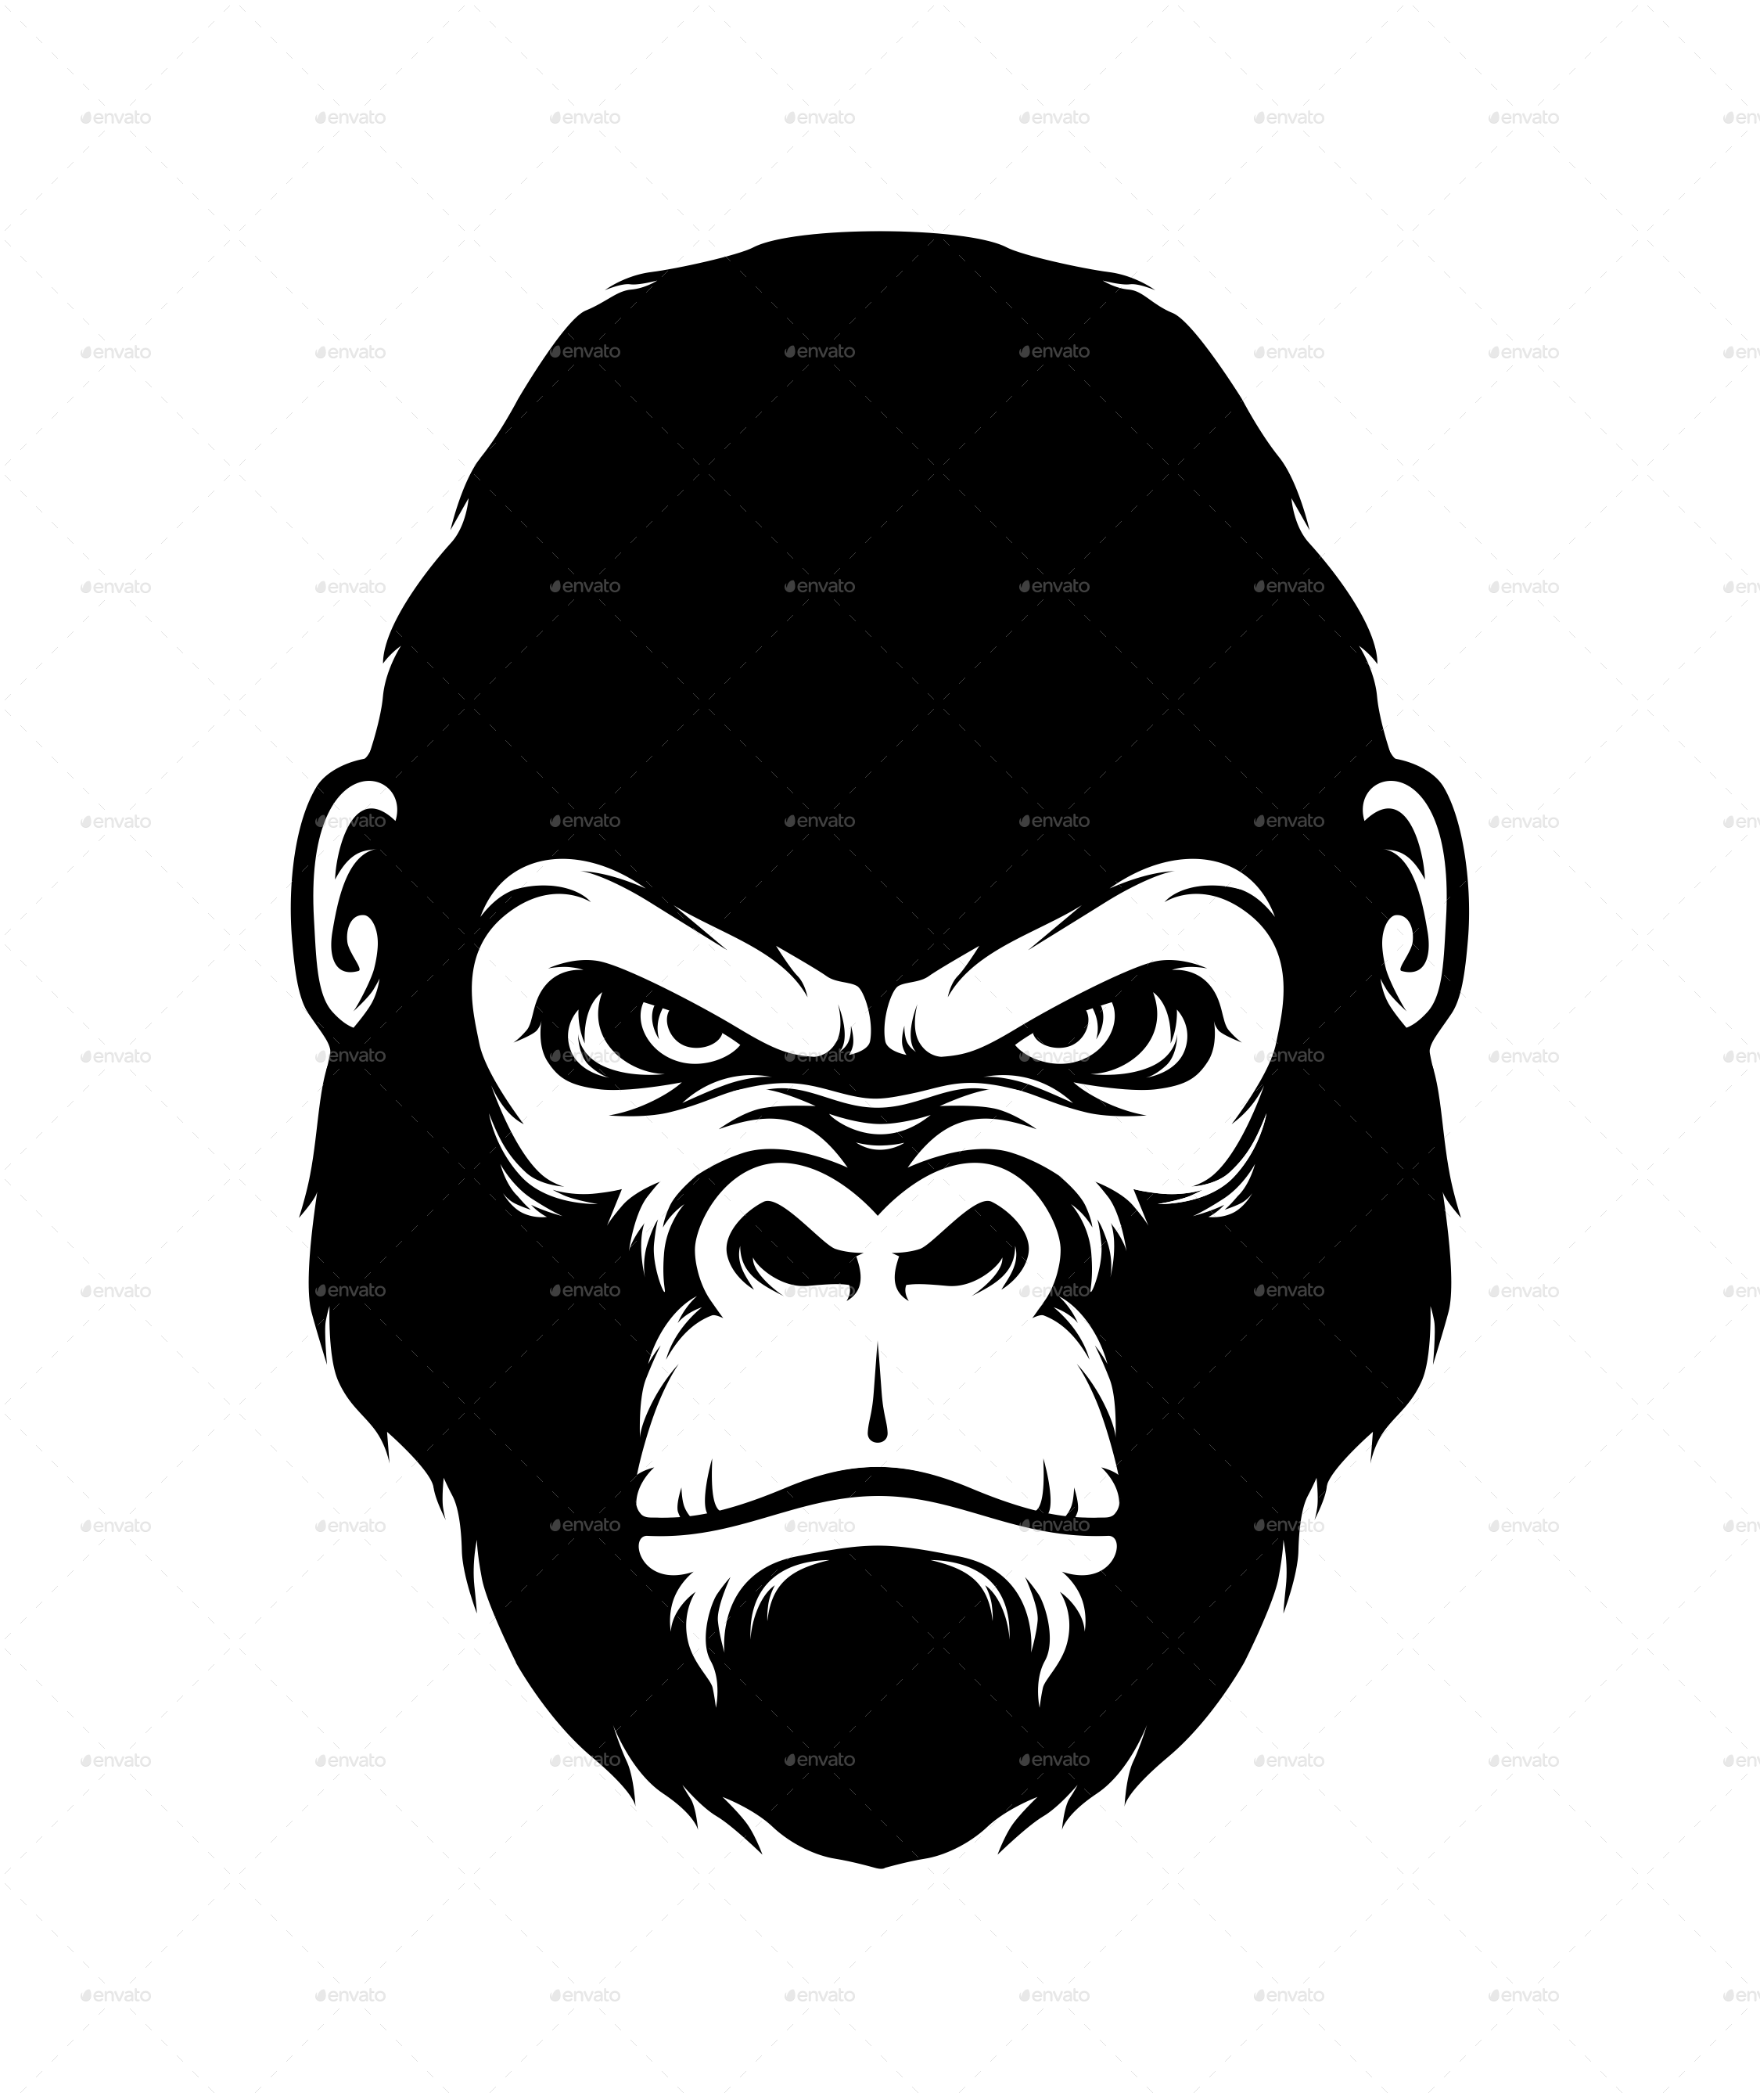 Gorilla head clipart images gallery for free download.